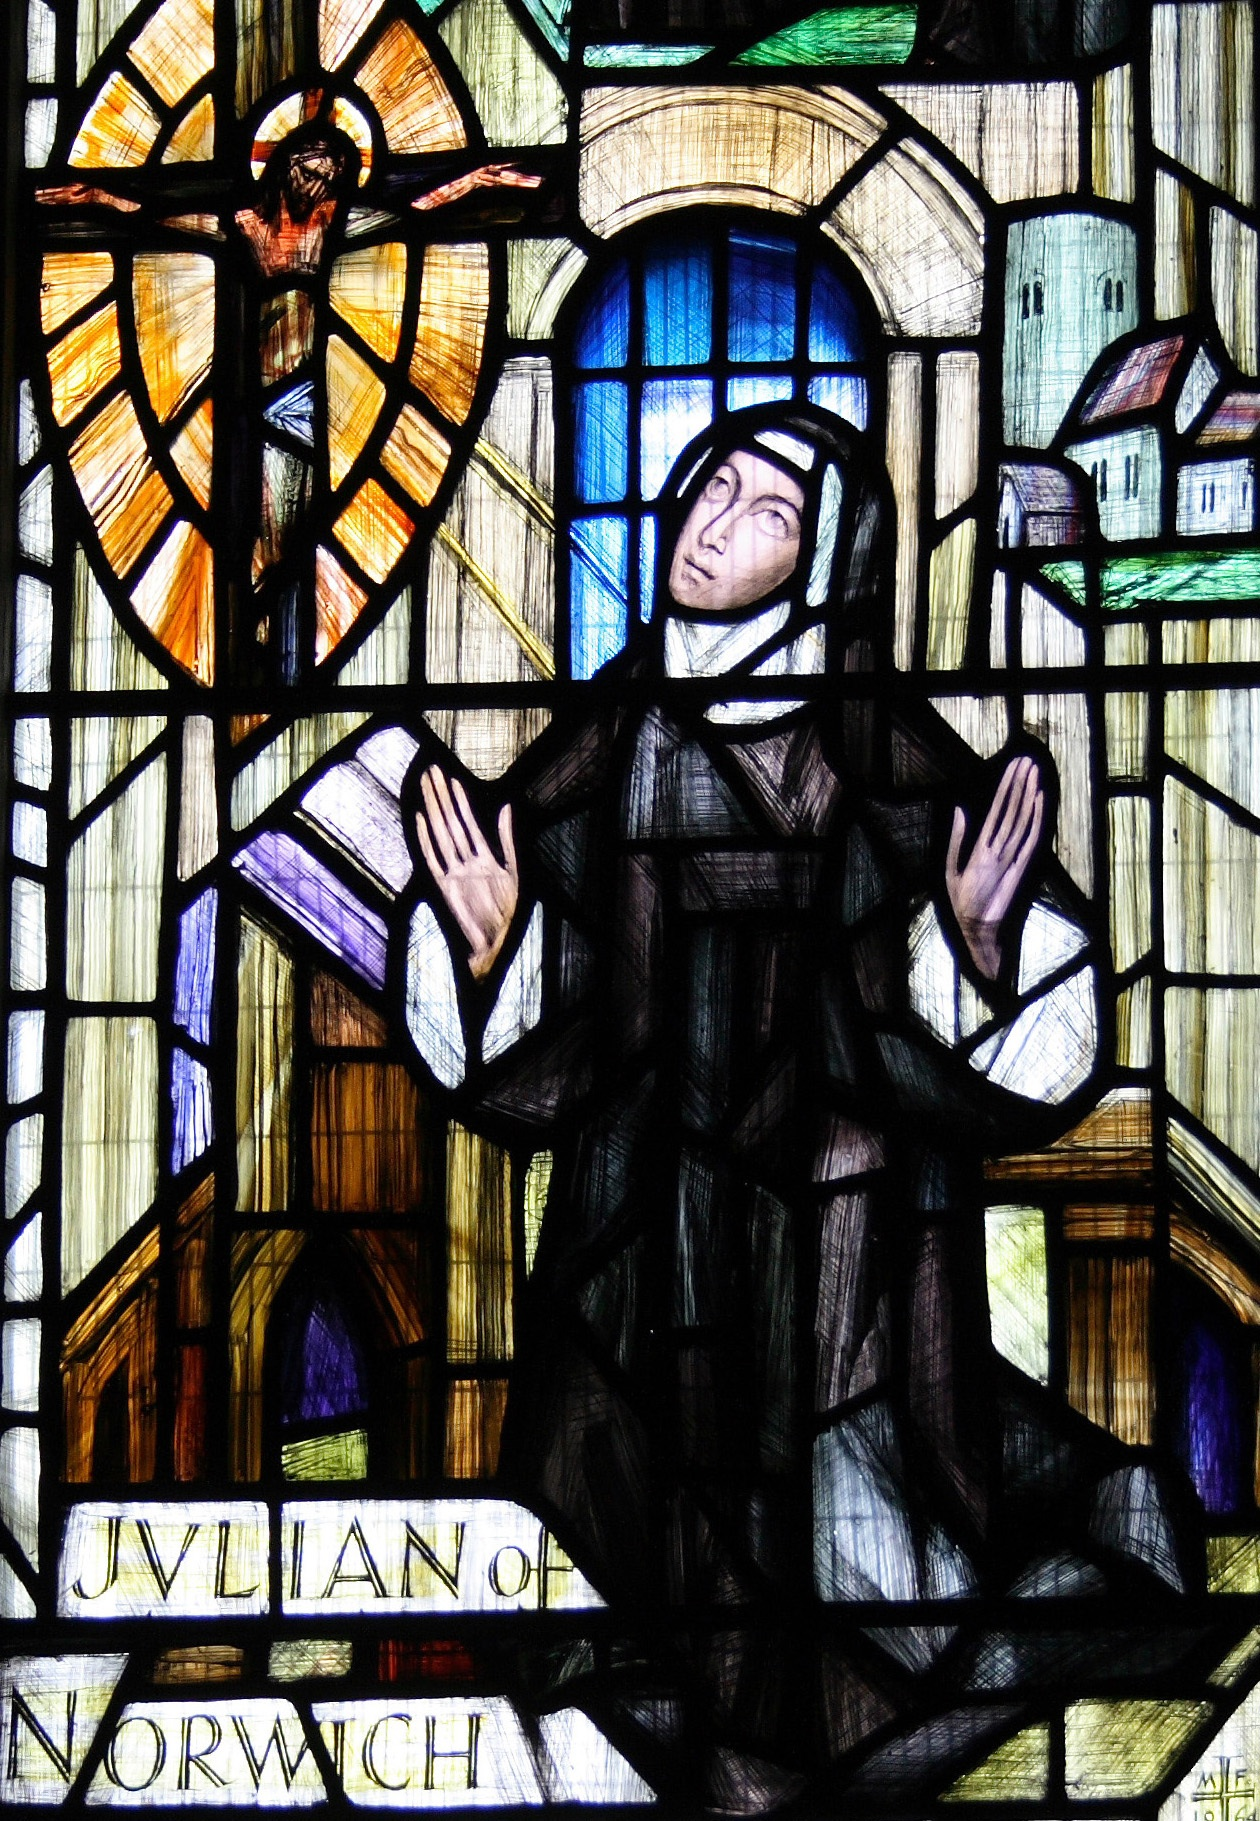 Julian of Norwich Stained Glass, Norwich Cathedral. Photo by Ian-S, used by permission.